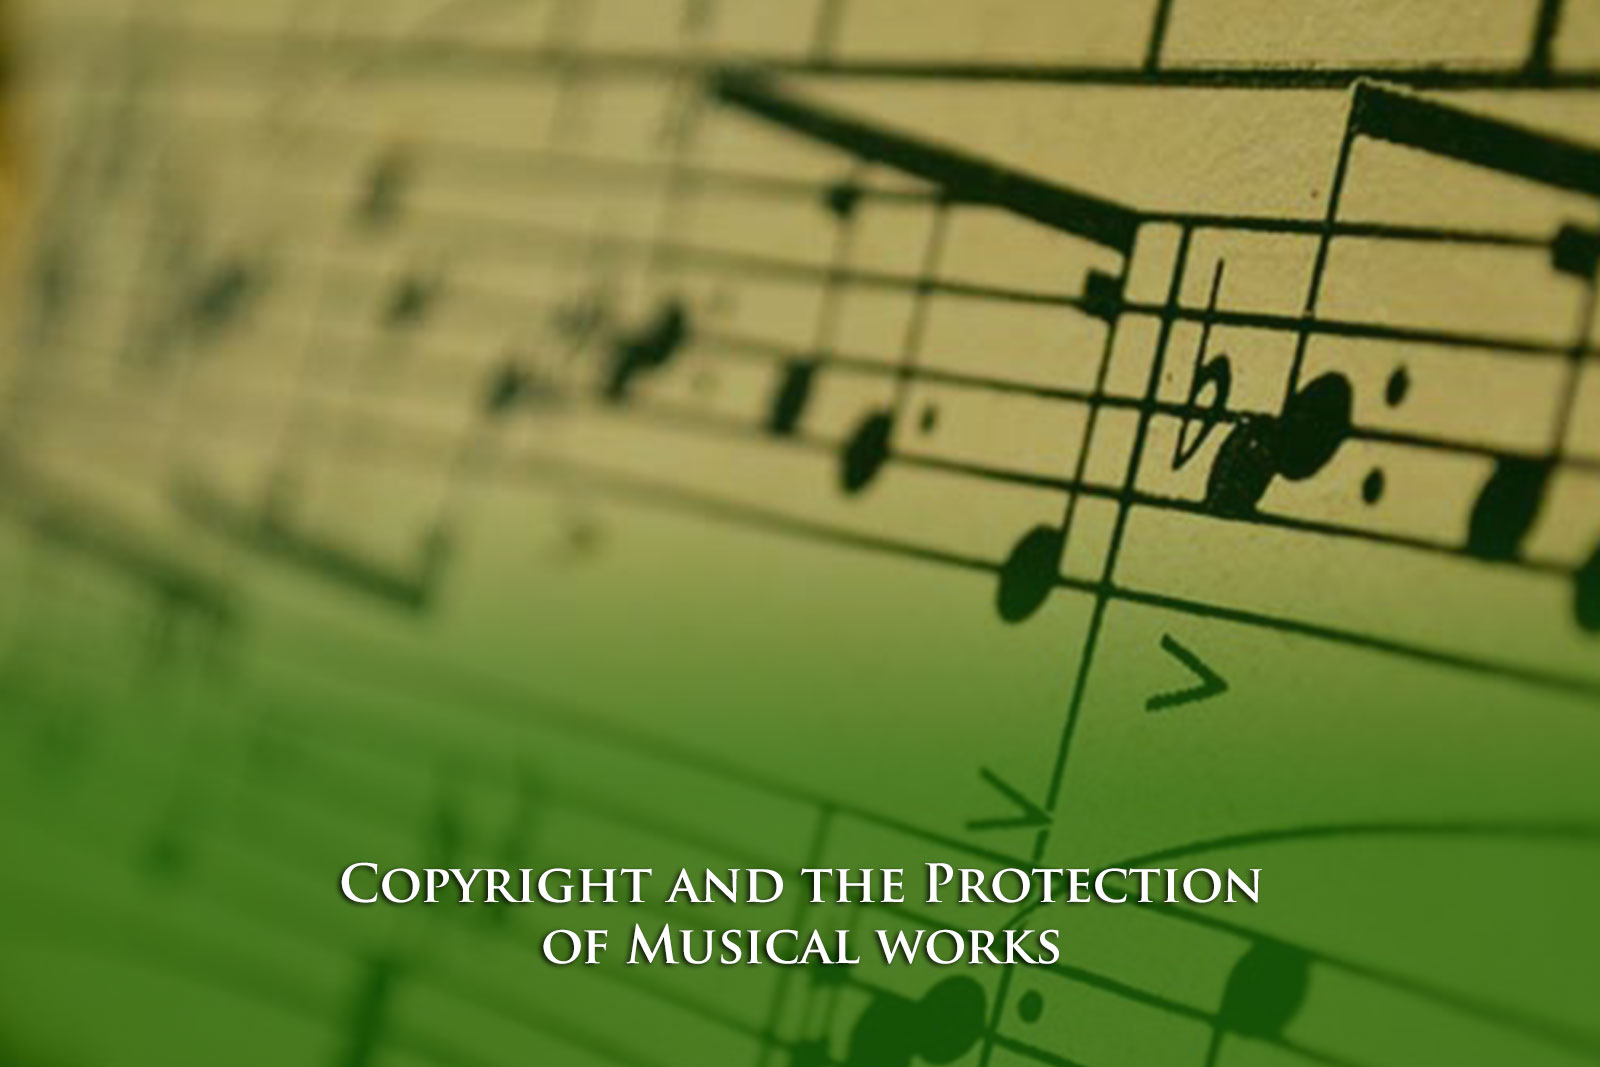 Copyright and the Protection of Musical works